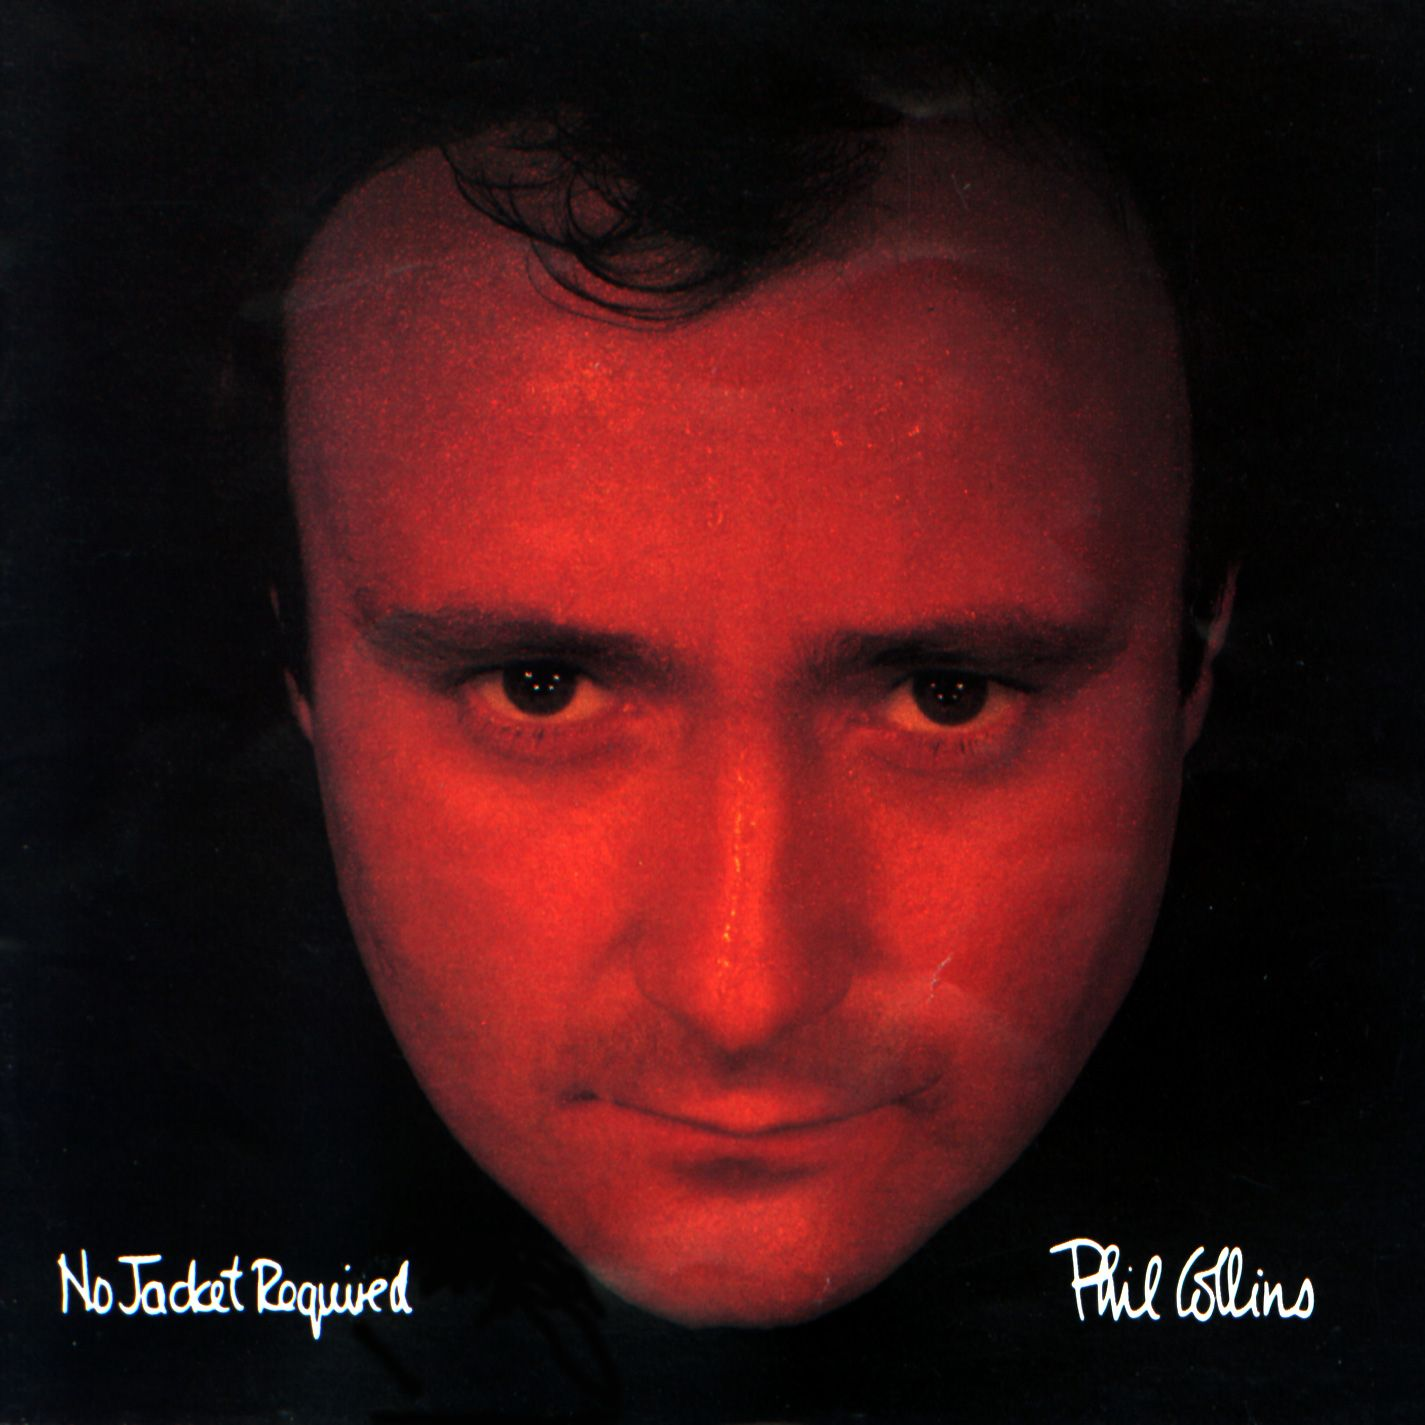 http://3.bp.blogspot.com/-ZychjluLr5w/T--kohtksWI/AAAAAAAAC4w/dOfMRARJDXs/s1600/Phil+Collins+-+No+Jacket+Required+(1985).jpg